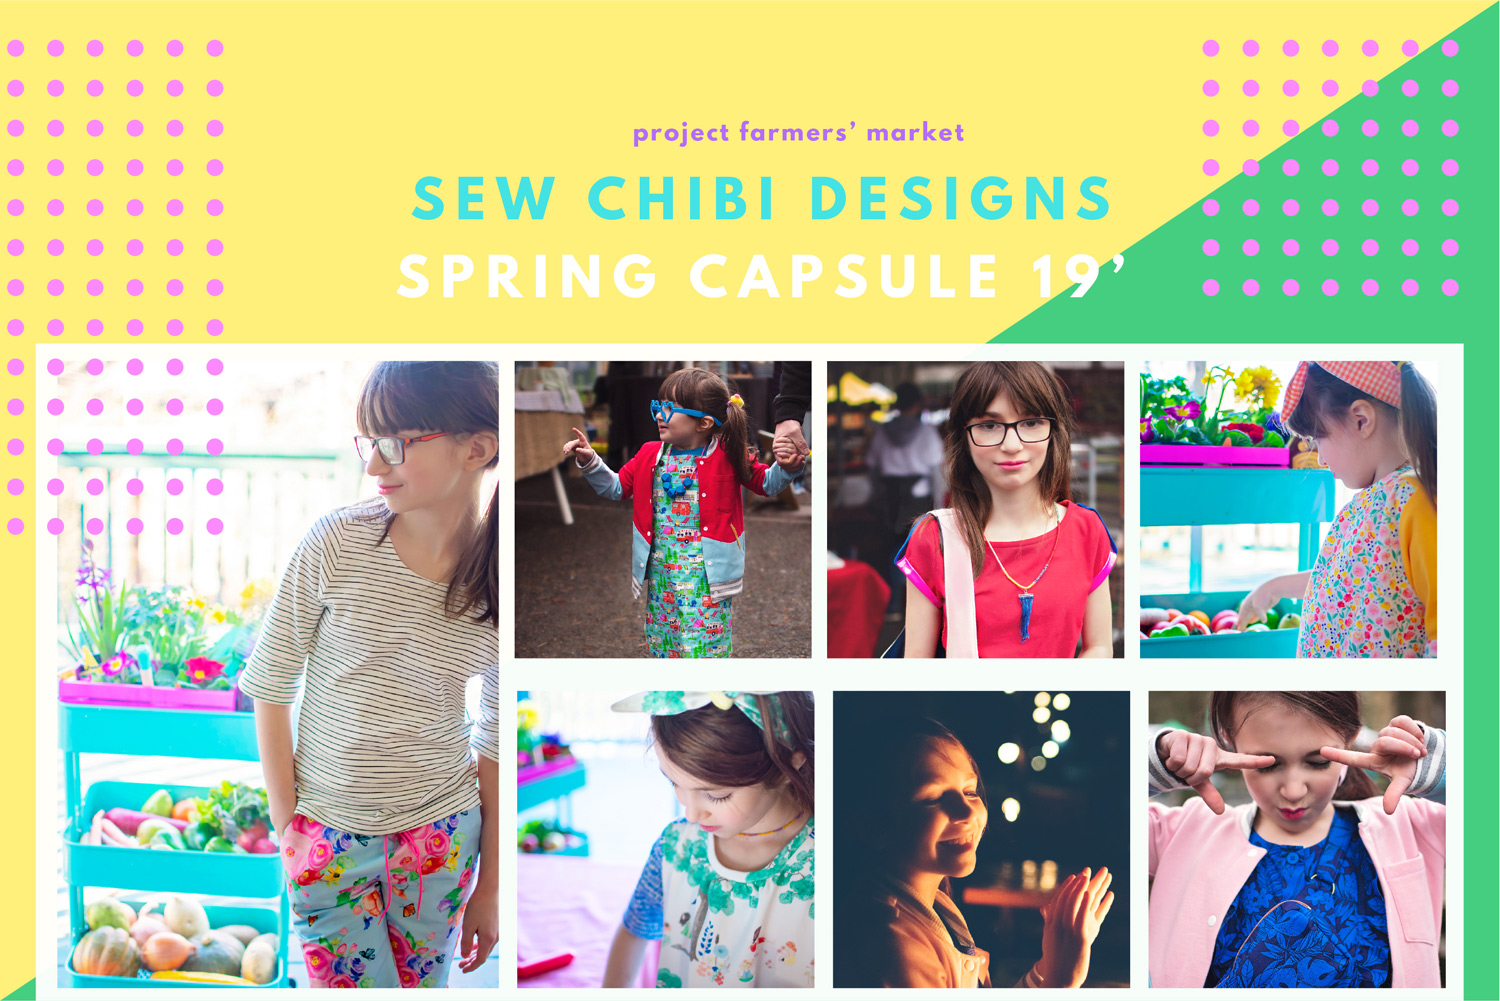 Sew Chibi Designs Farmers' Market Capsule for Project Run & Play Featuring the Ichigo Bomber Jacket, by Kat of  Sew Chibi Designs , the UpBeet Tee/Dress and Turnip Trousers by Celina of  Petit a Petit , the Caraway Cardigan by Delia of  Delia Creates , the Jonagold Jumper by Jenn of  a Jennuine Life , Rosemary and Thyme Tops by Audrey of  Skirt Fixation , the Soleil Skirt and Banana Boat Tee by Jess of  Lil Luxe Collection , the Seed Romper by Suz of  Sewpony , and the D'Anjou dress by Bernadette of  Duchess and Hare ! Check out all of the patterns plus a ton of freebie patterns (like my freebie,  the Mochi Bag PDF Pattern )!